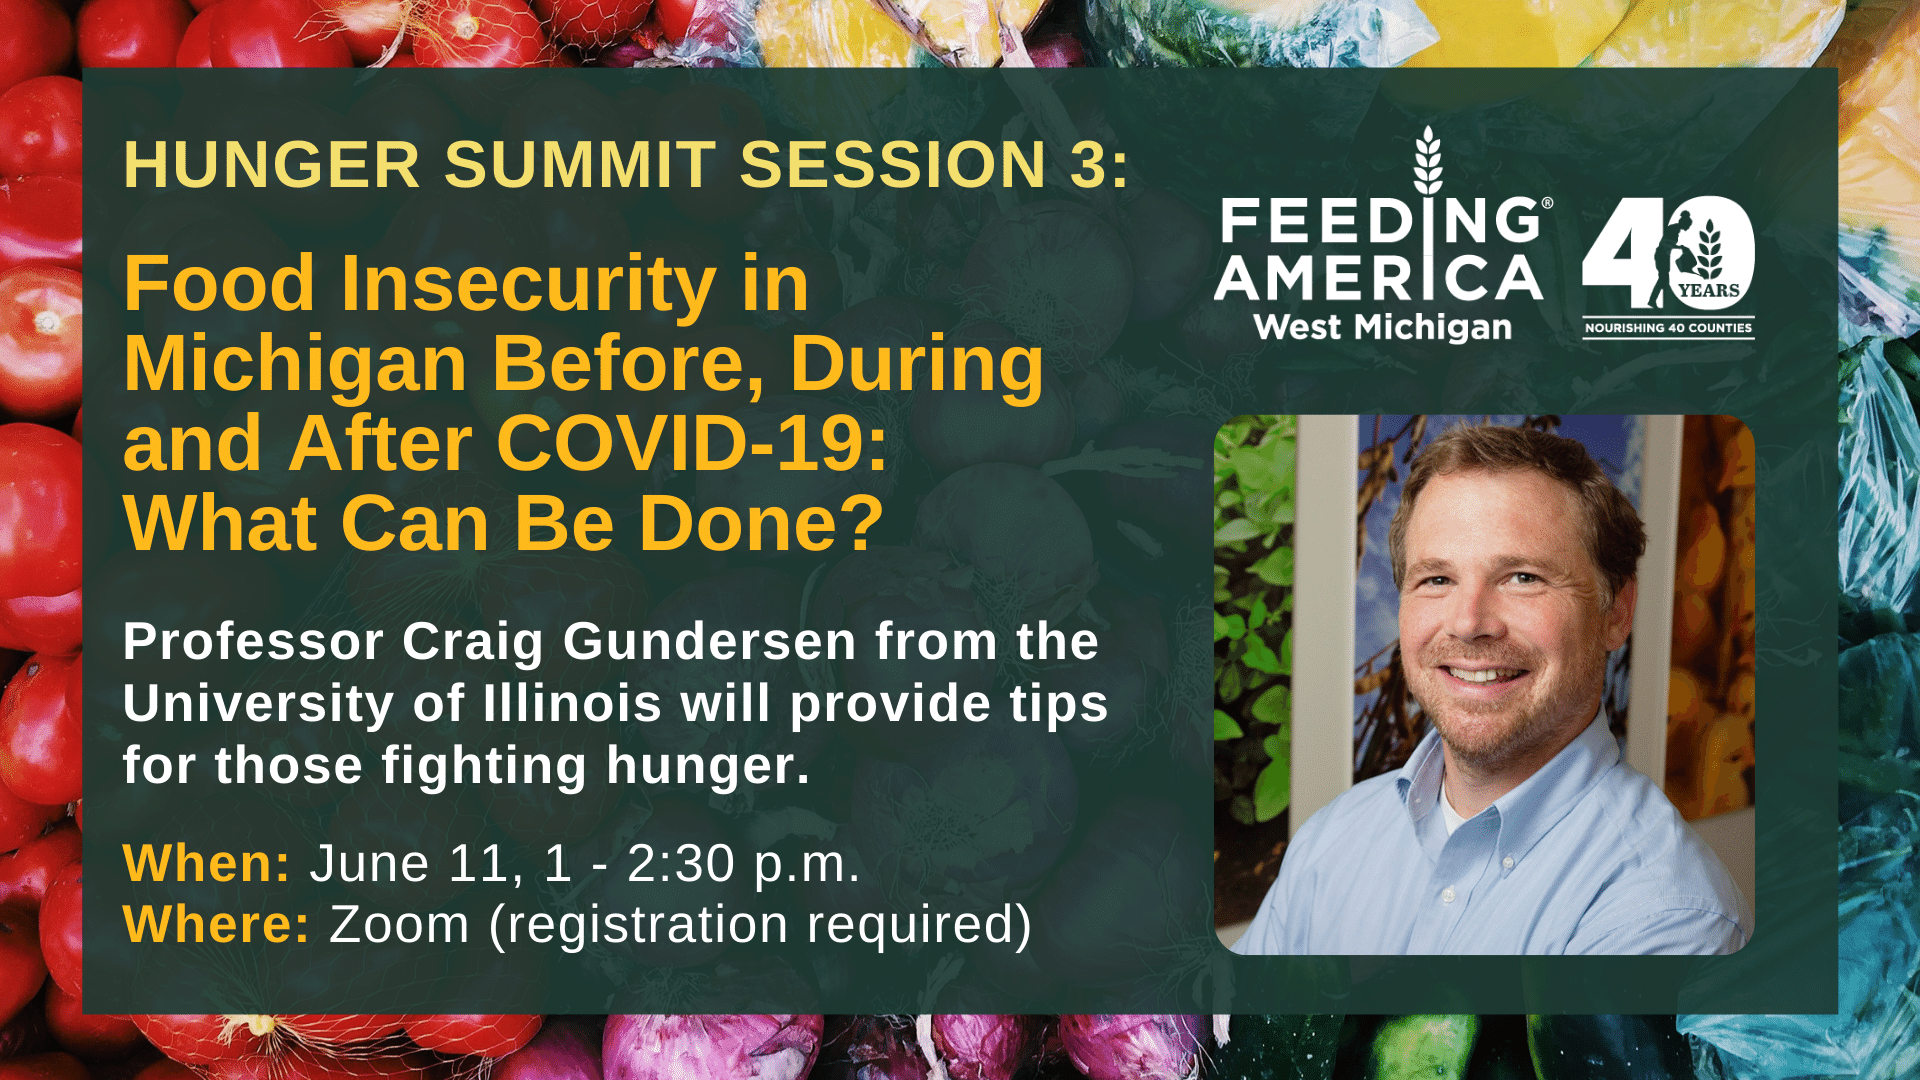 Hunger Summit Session 3 - Food Insecurity in Michigan Before, During, and After COVID-19: What Can Be Done - Profession Craig Gunderson from the University of Illinois will provide tips for those fighting hunger - June 11 1-2:30 PM on Zoom (registration required)